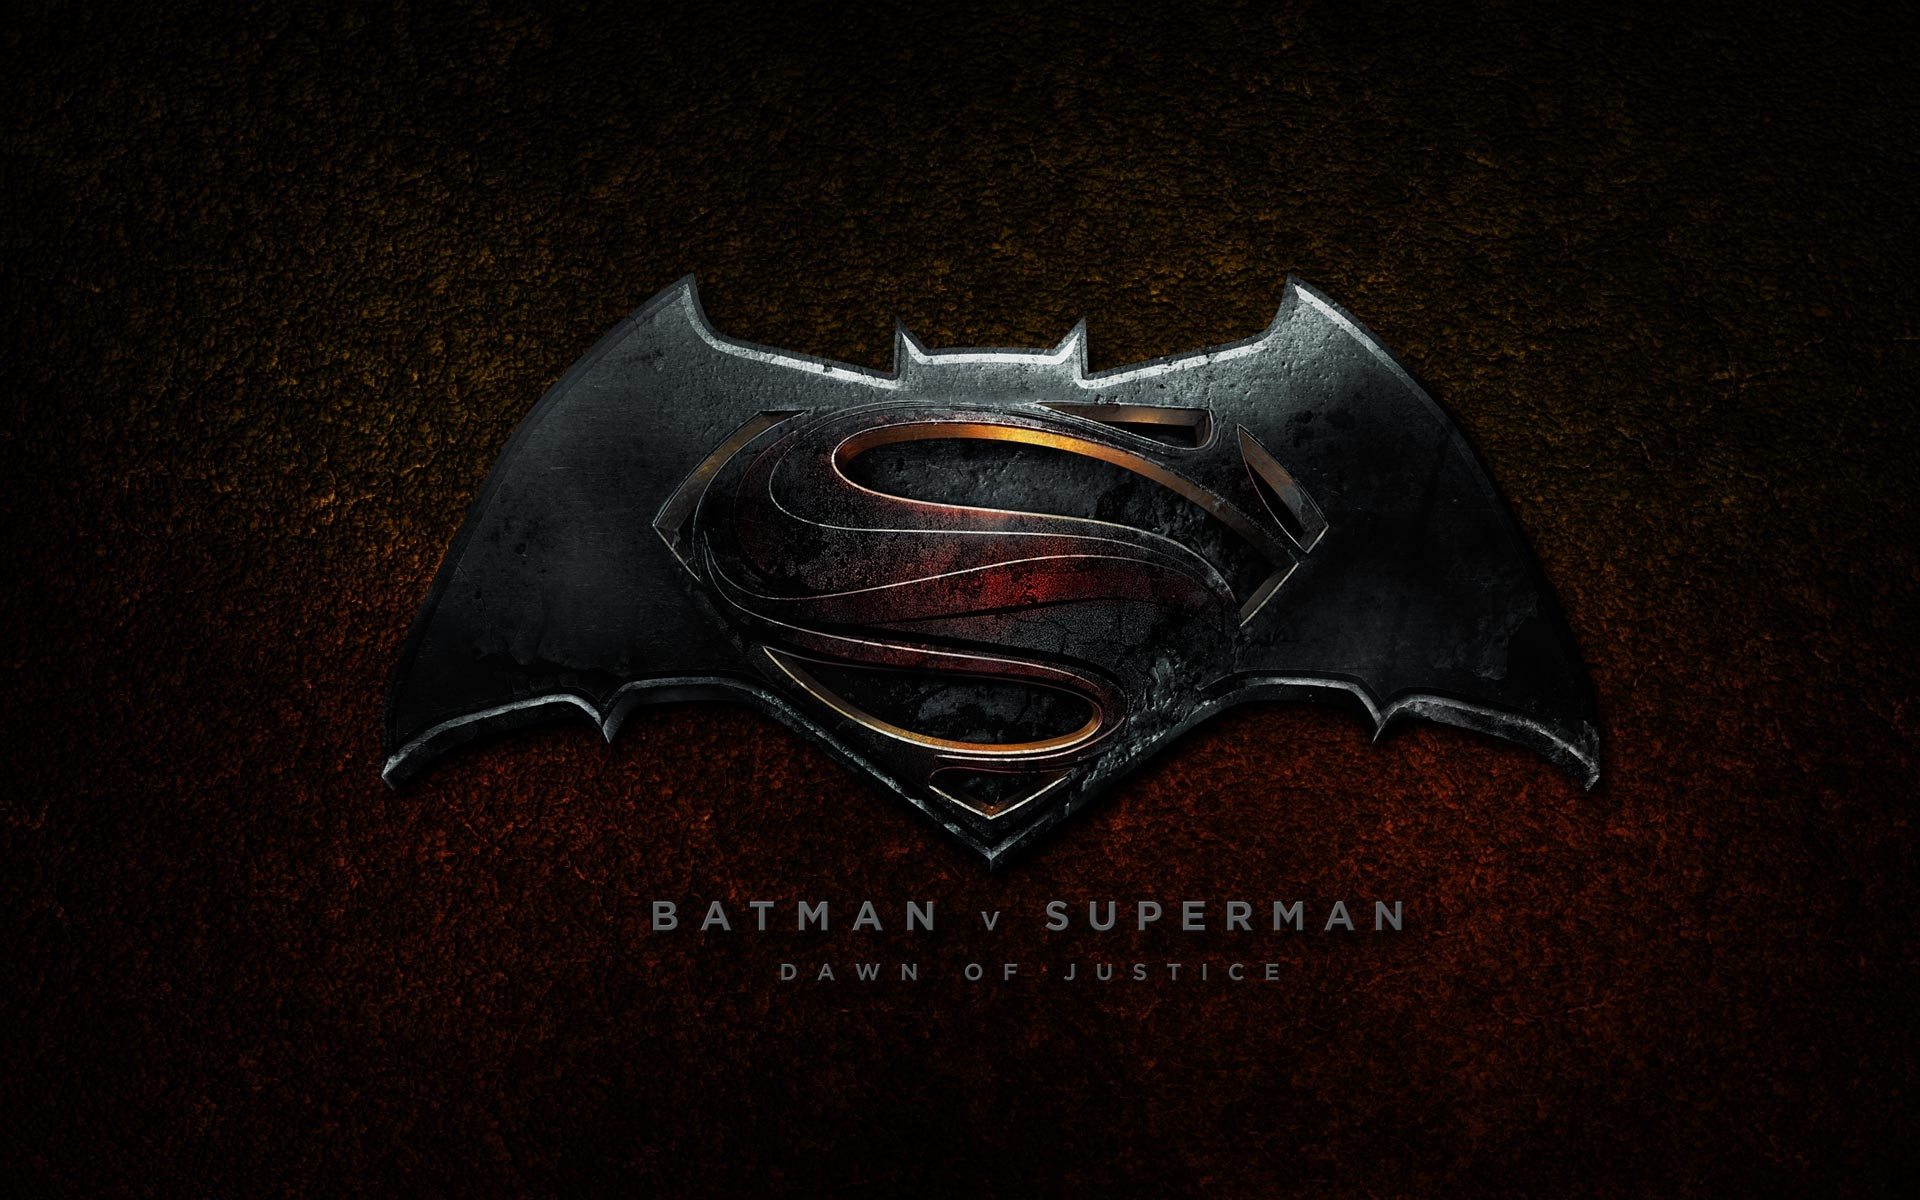 1920x1200 Batman vs Superman: Dawn of Justice 2016 Logo Wallpaper HD